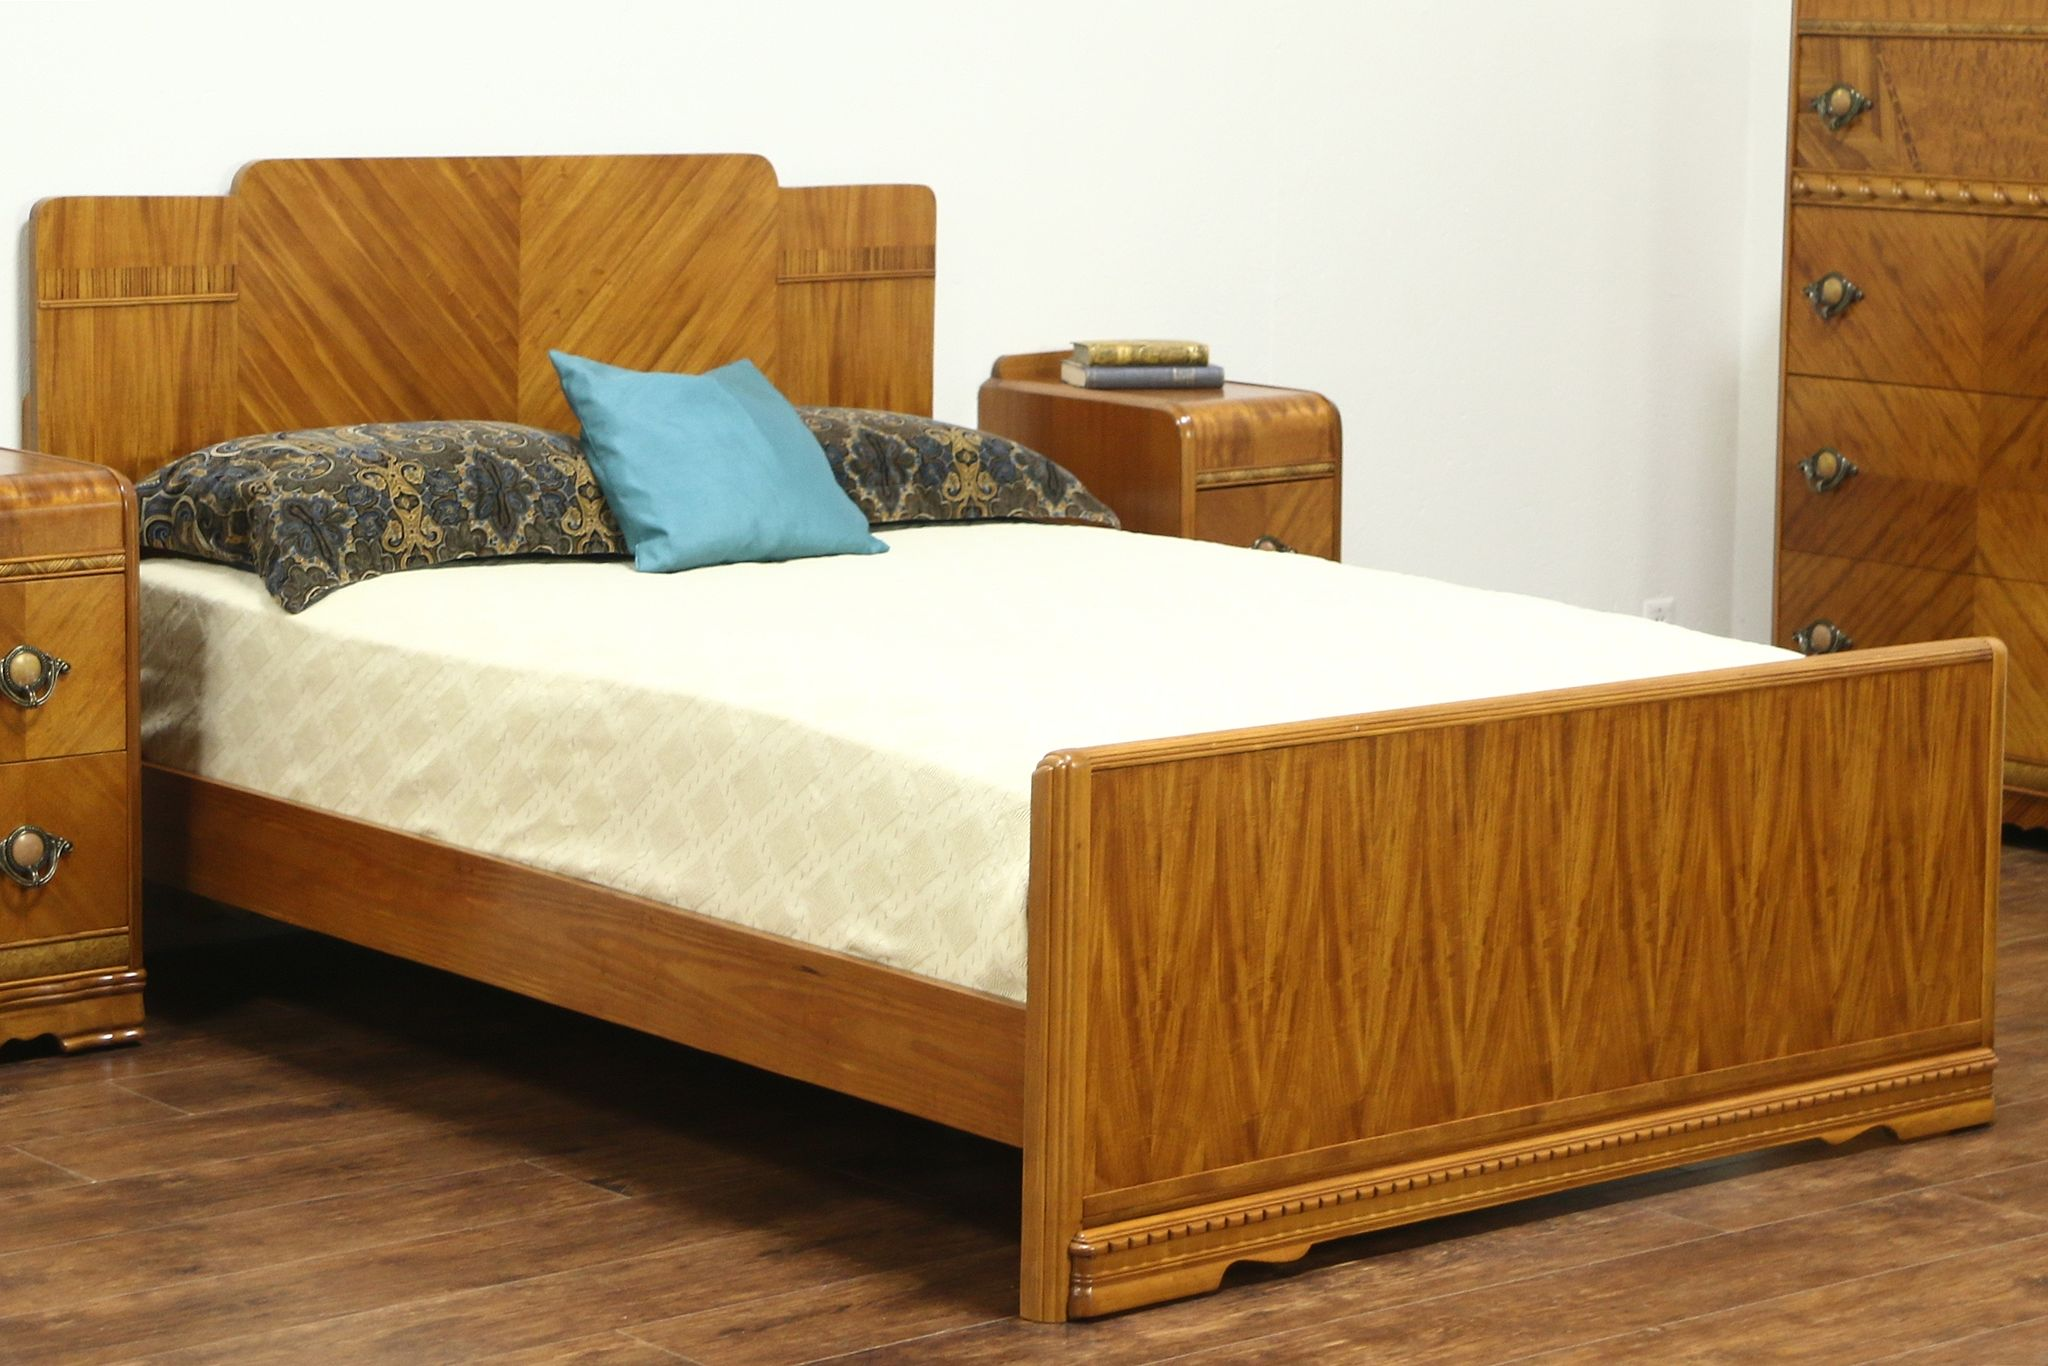 Sold Waterfall Design Art Deco 1935 Vintage Bed Full Or Double